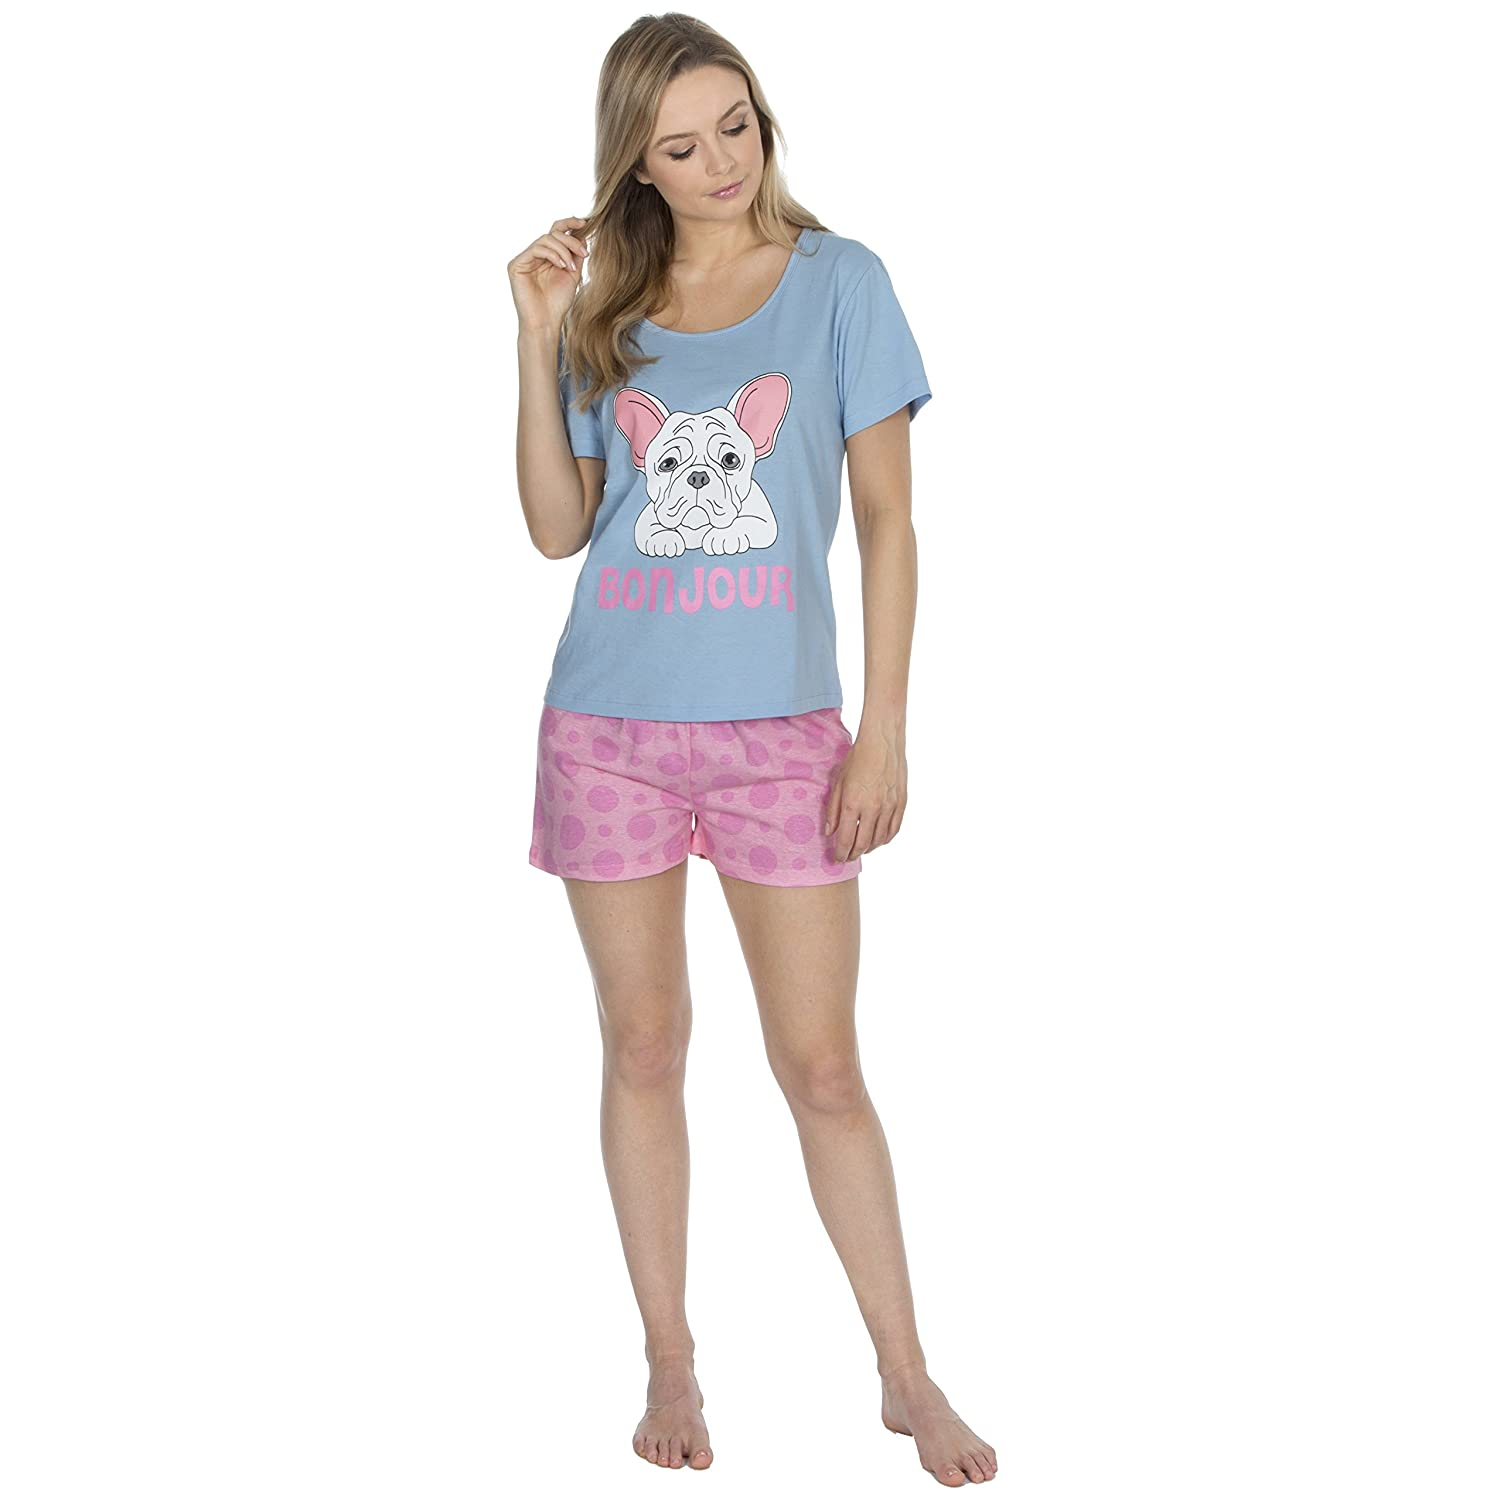 Forever Dreaming Ladies Cotton Jersey Shorts   Top Pyjama Set   Amazon.co.uk  Clothing 825f6d450